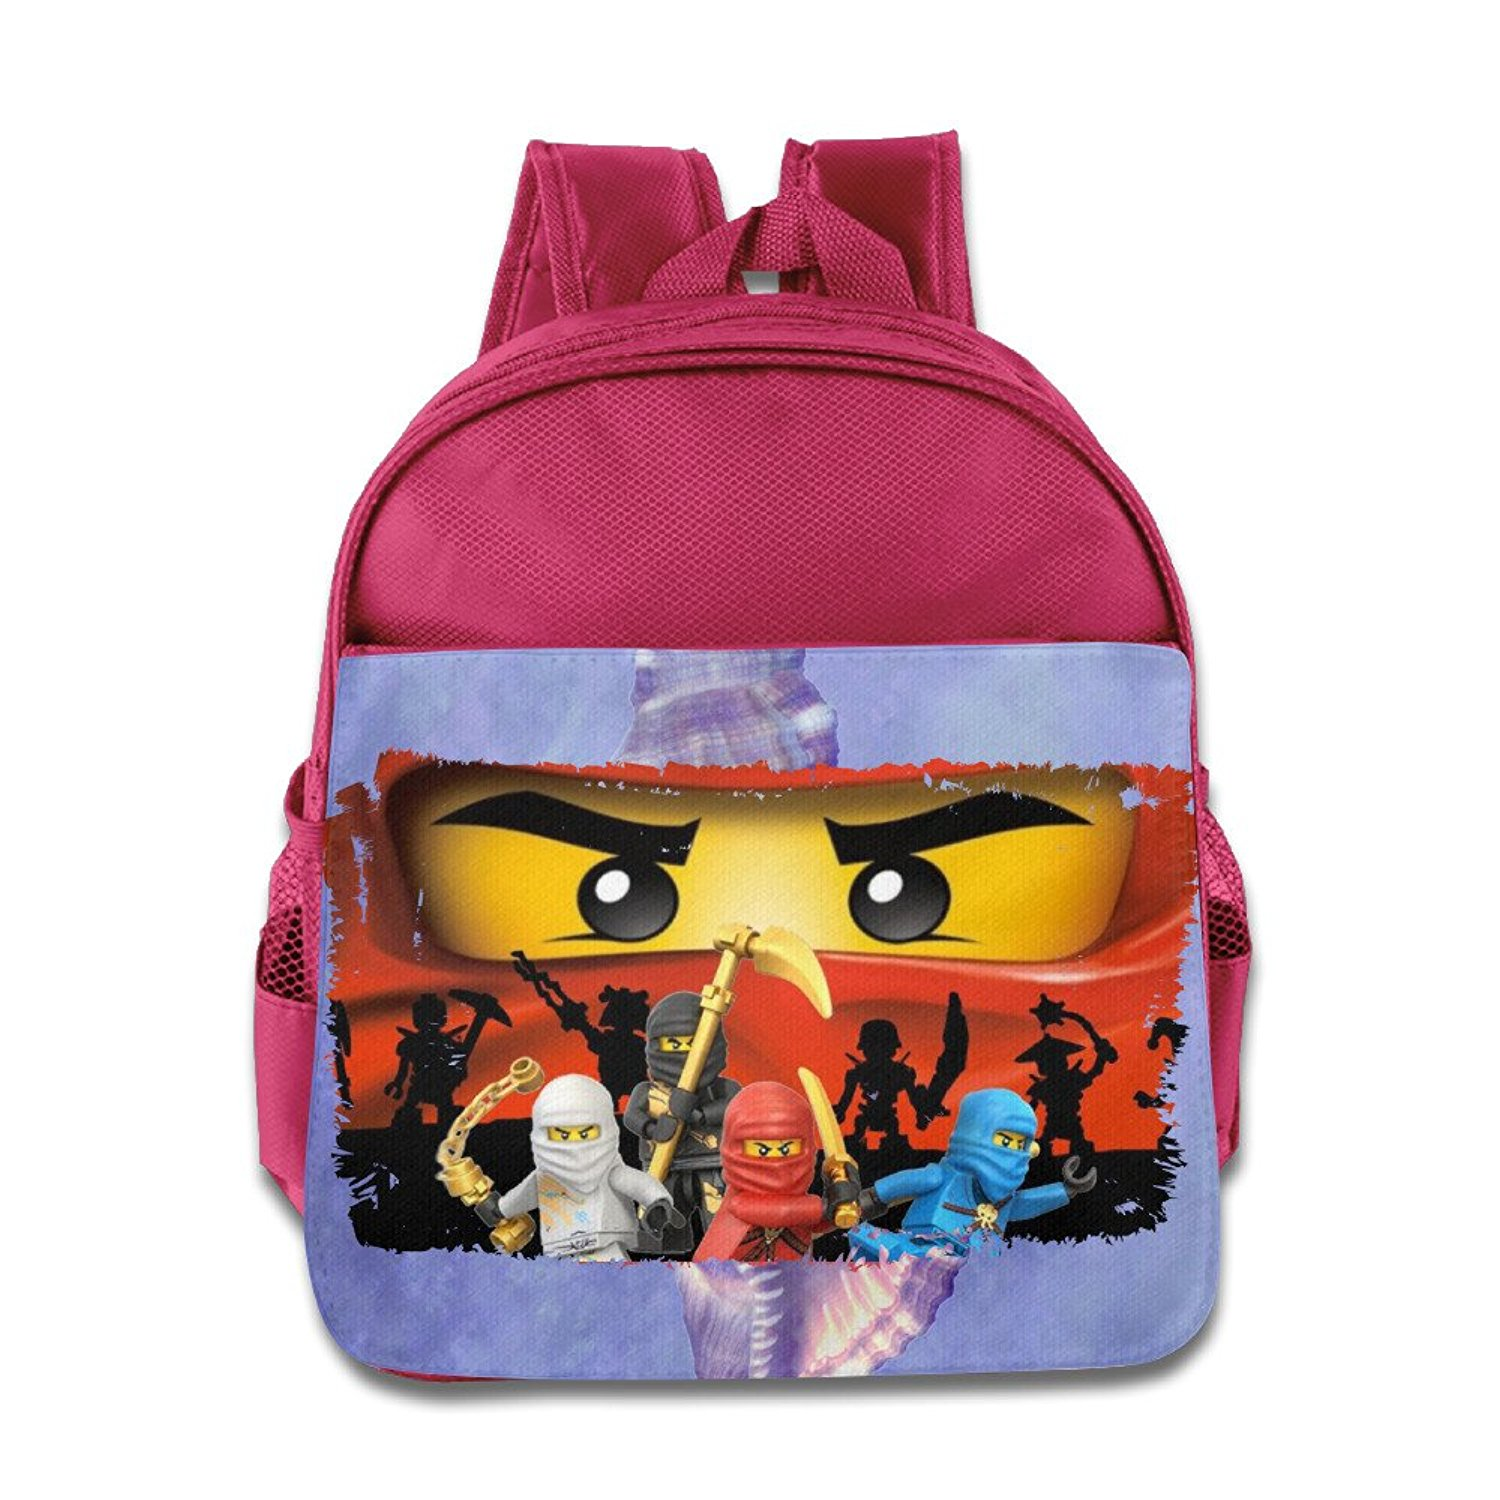 Cheap Lego Backpack Find Lego Backpack Deals On Line At Alibabacom